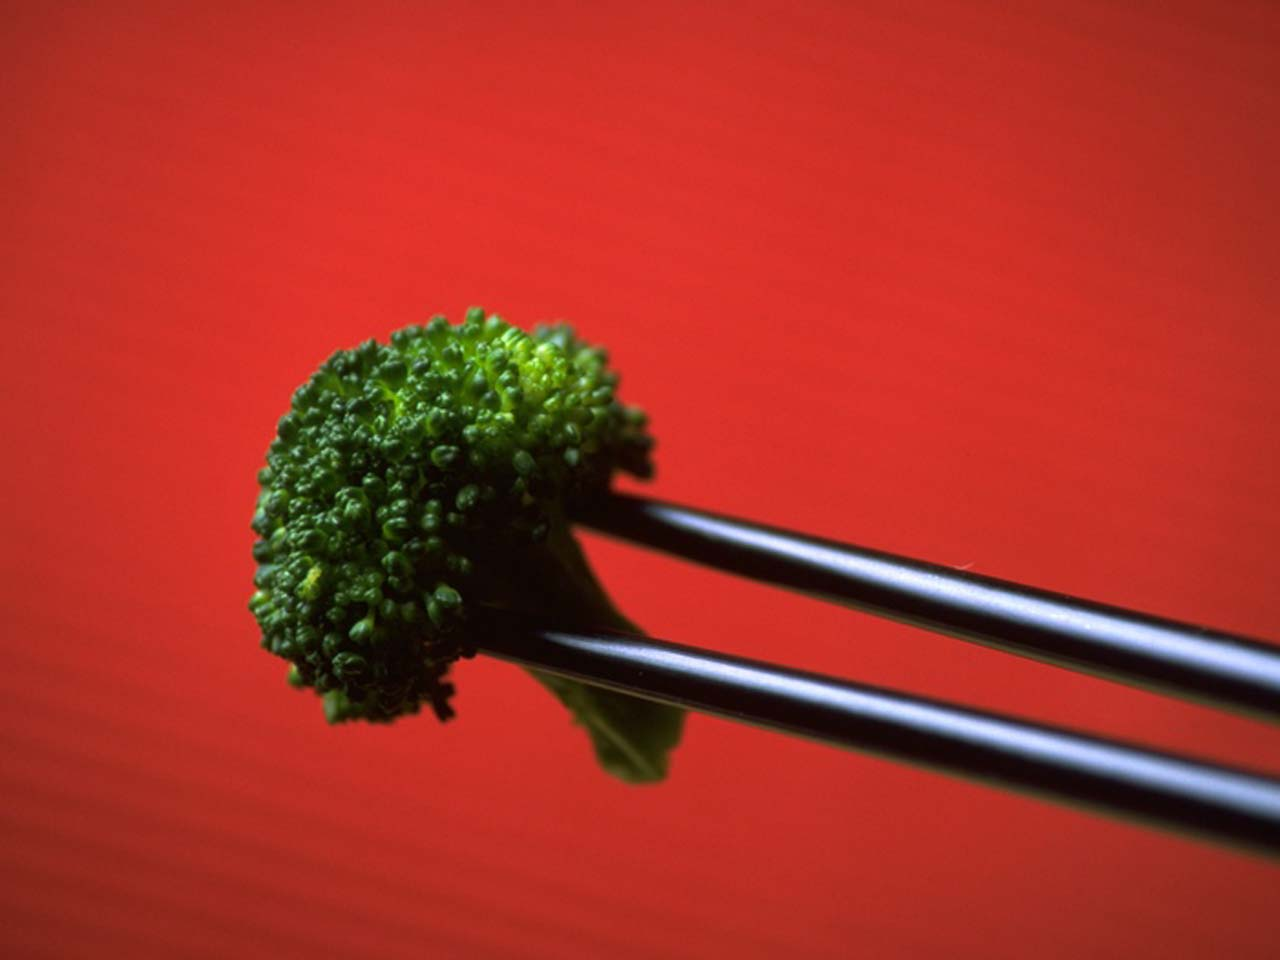 Broccoli is rich in vitamin K, which has been associated with improved memory and cognitive function.